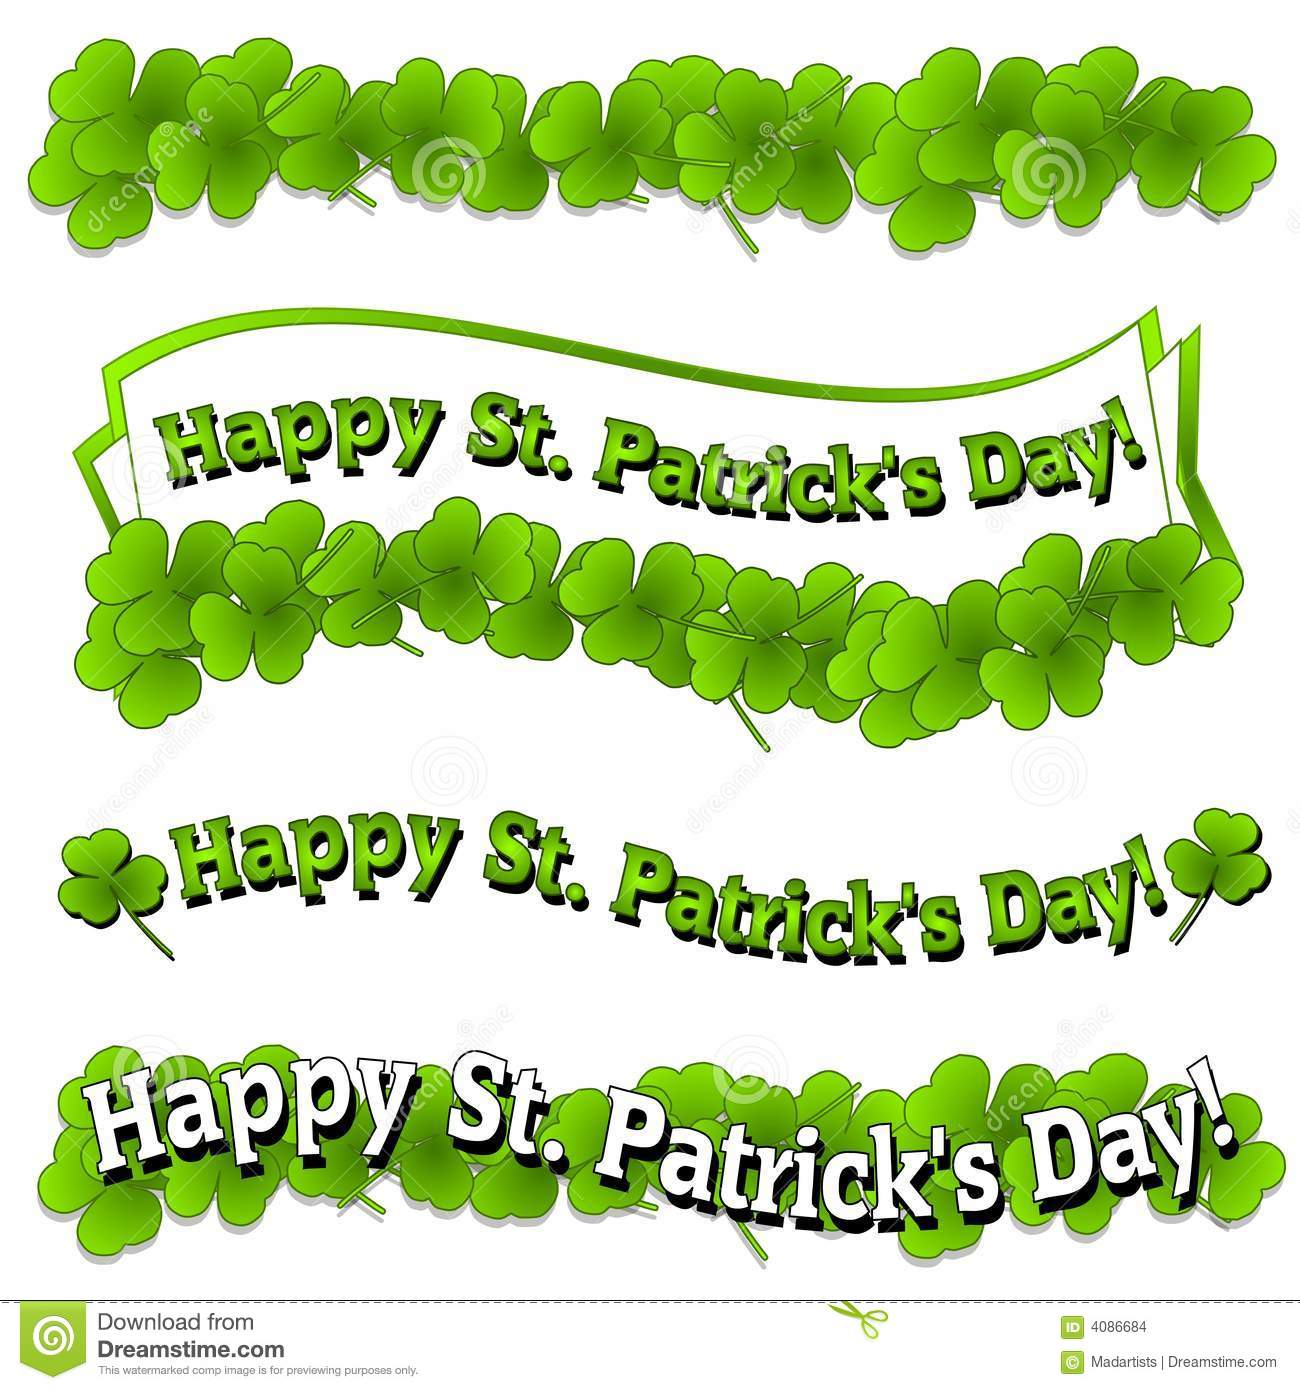 Happy St. Patrick's Day Banners Logos Stock Illustration.